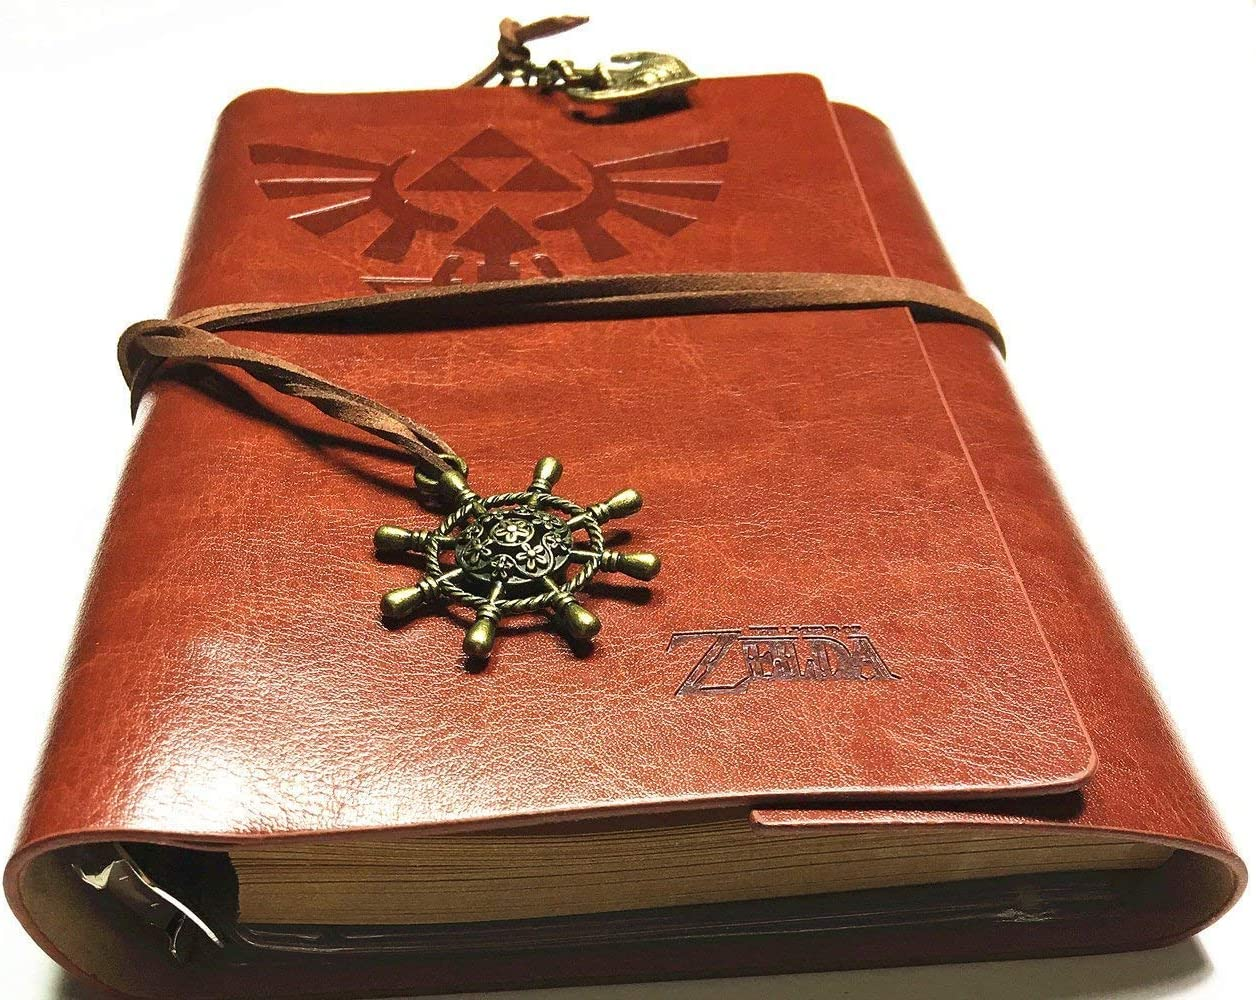 Travel journal and Note,card holder-Legend of Zelda Vintage PU Leather Notebook for Diary